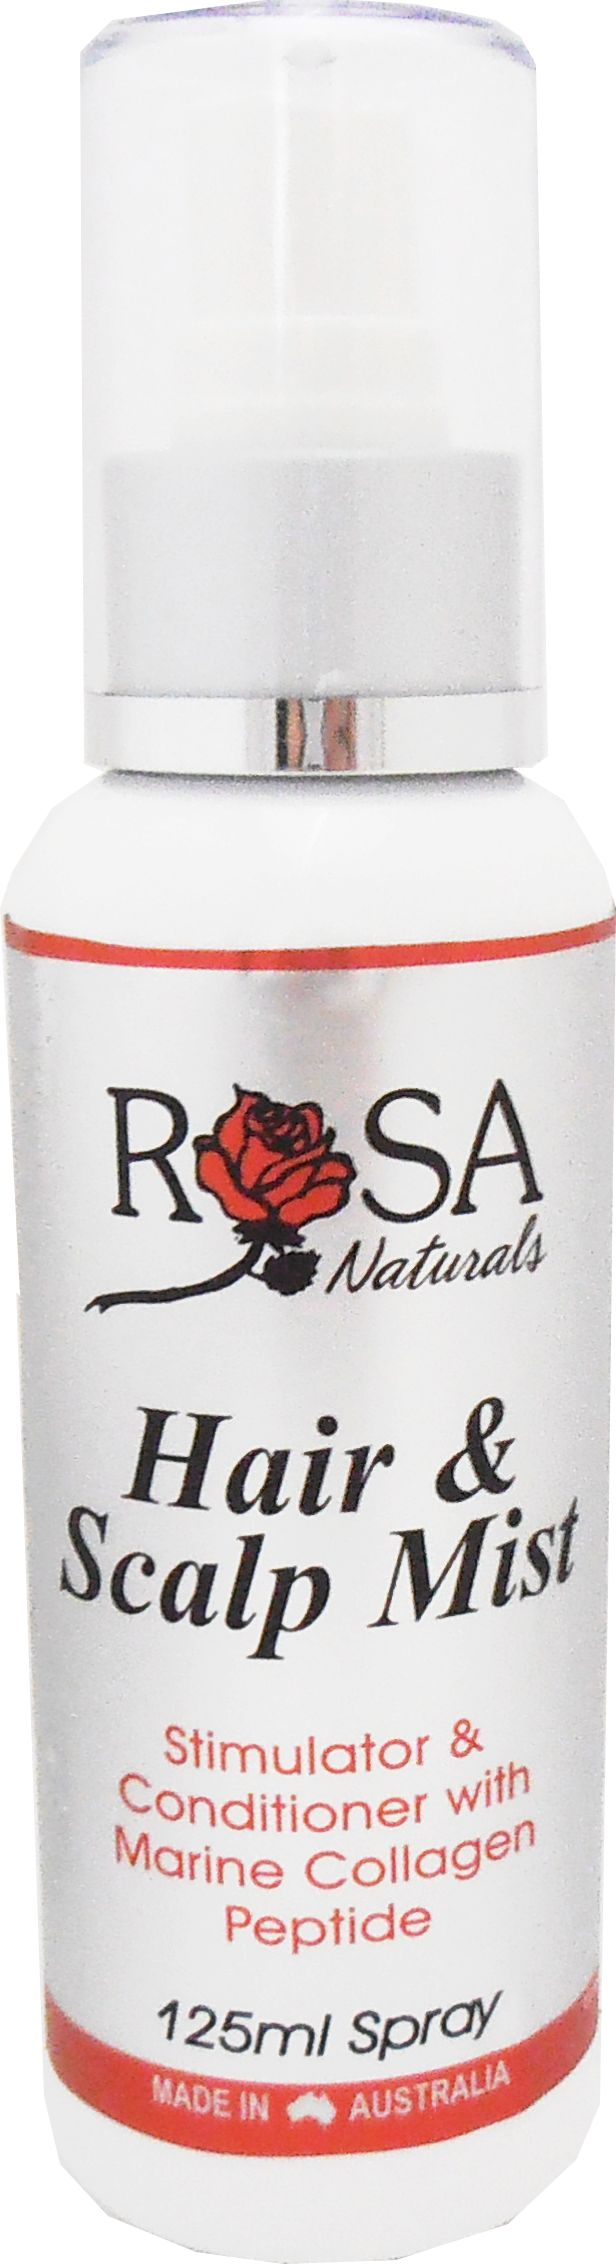 """Do you feel dryness and flakiness for head? Try """"Hair & Scalp Mist"""" from Rosa Naturals!  Stimulator & Conditioner with Marine Collagen Peptide Special unique nutritive, mineral and fatty acid rich hair tonic with highly active herbs and essential oils to invigorate the condition of the hair and scalp. *Helps maintain a healthy scalp environment to maximise healthy hair growth *Helps maintain natural hair colour and condition *Helps protect scalp from dryness and flakiness"""